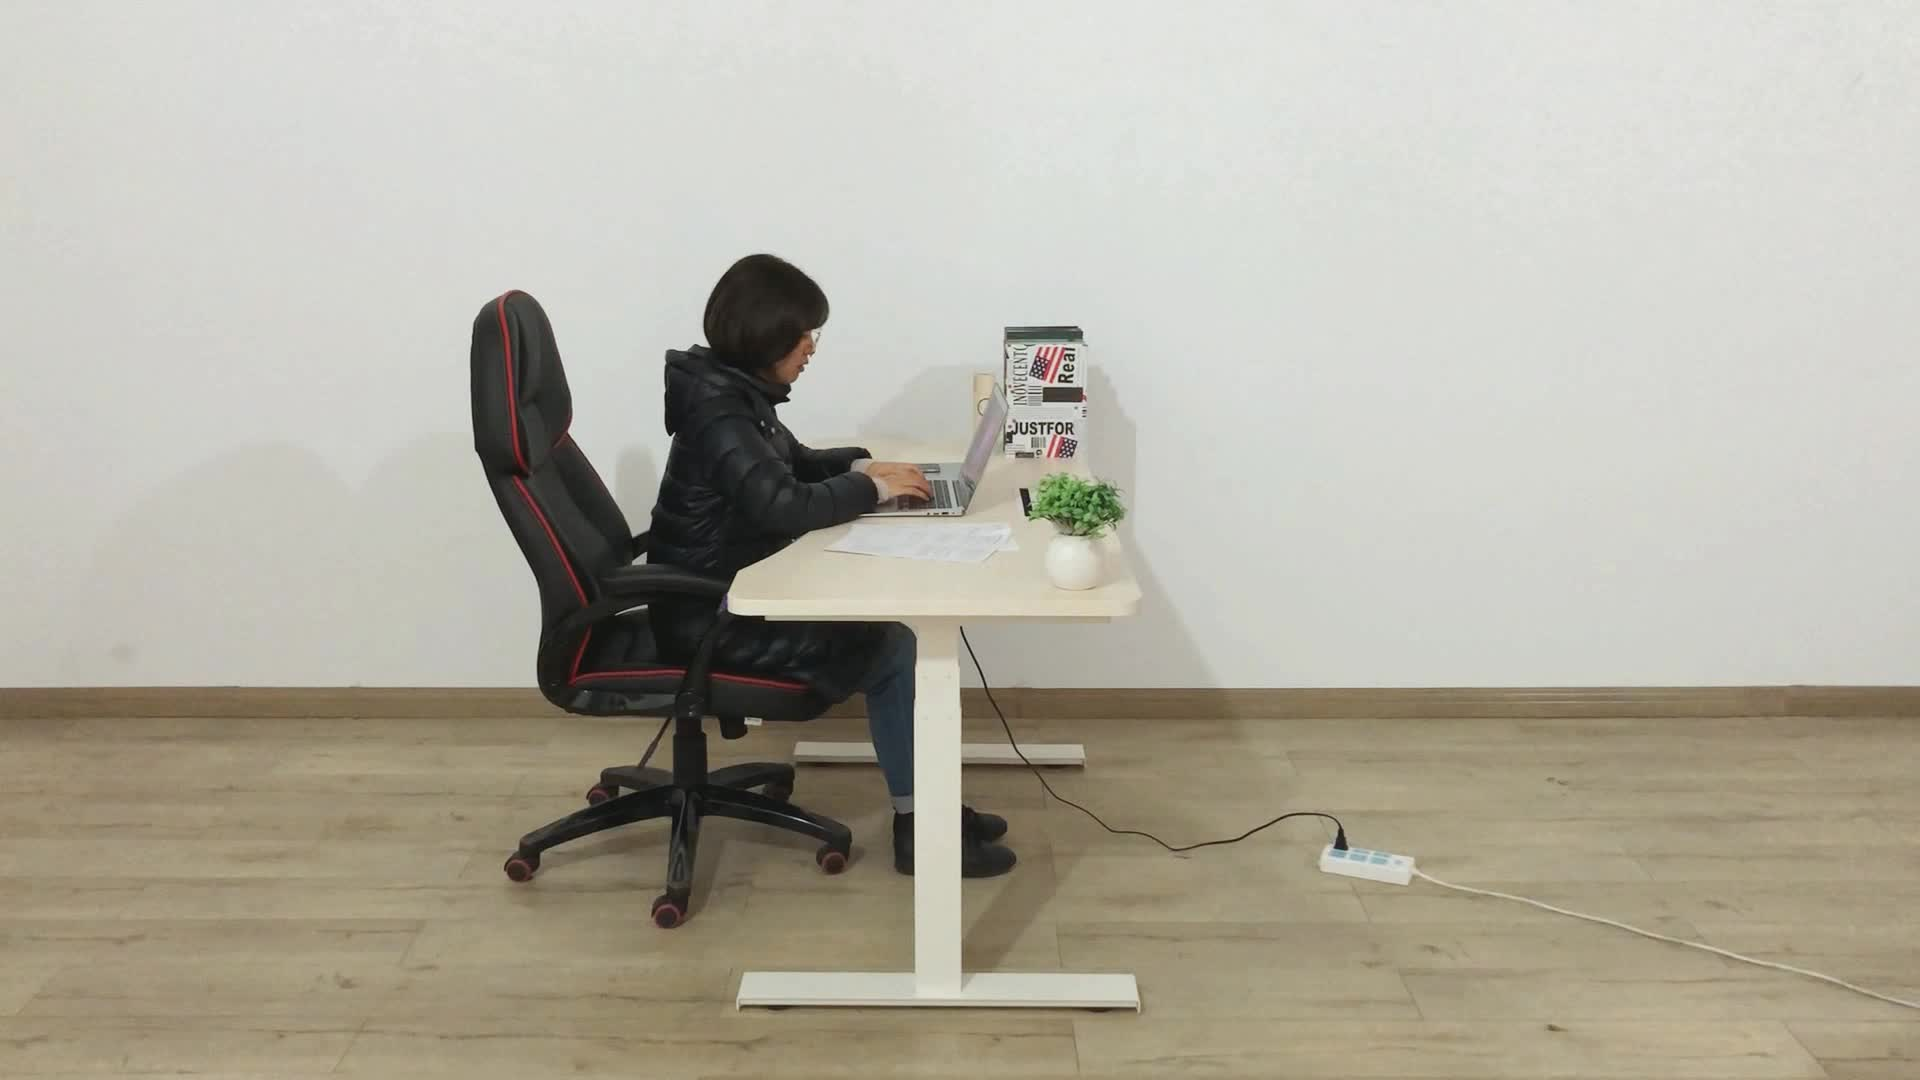 Electric stand up desk adjustable Sit to Stand/Standing desk with Dual Motor 3 Stage Up Lifting Legs